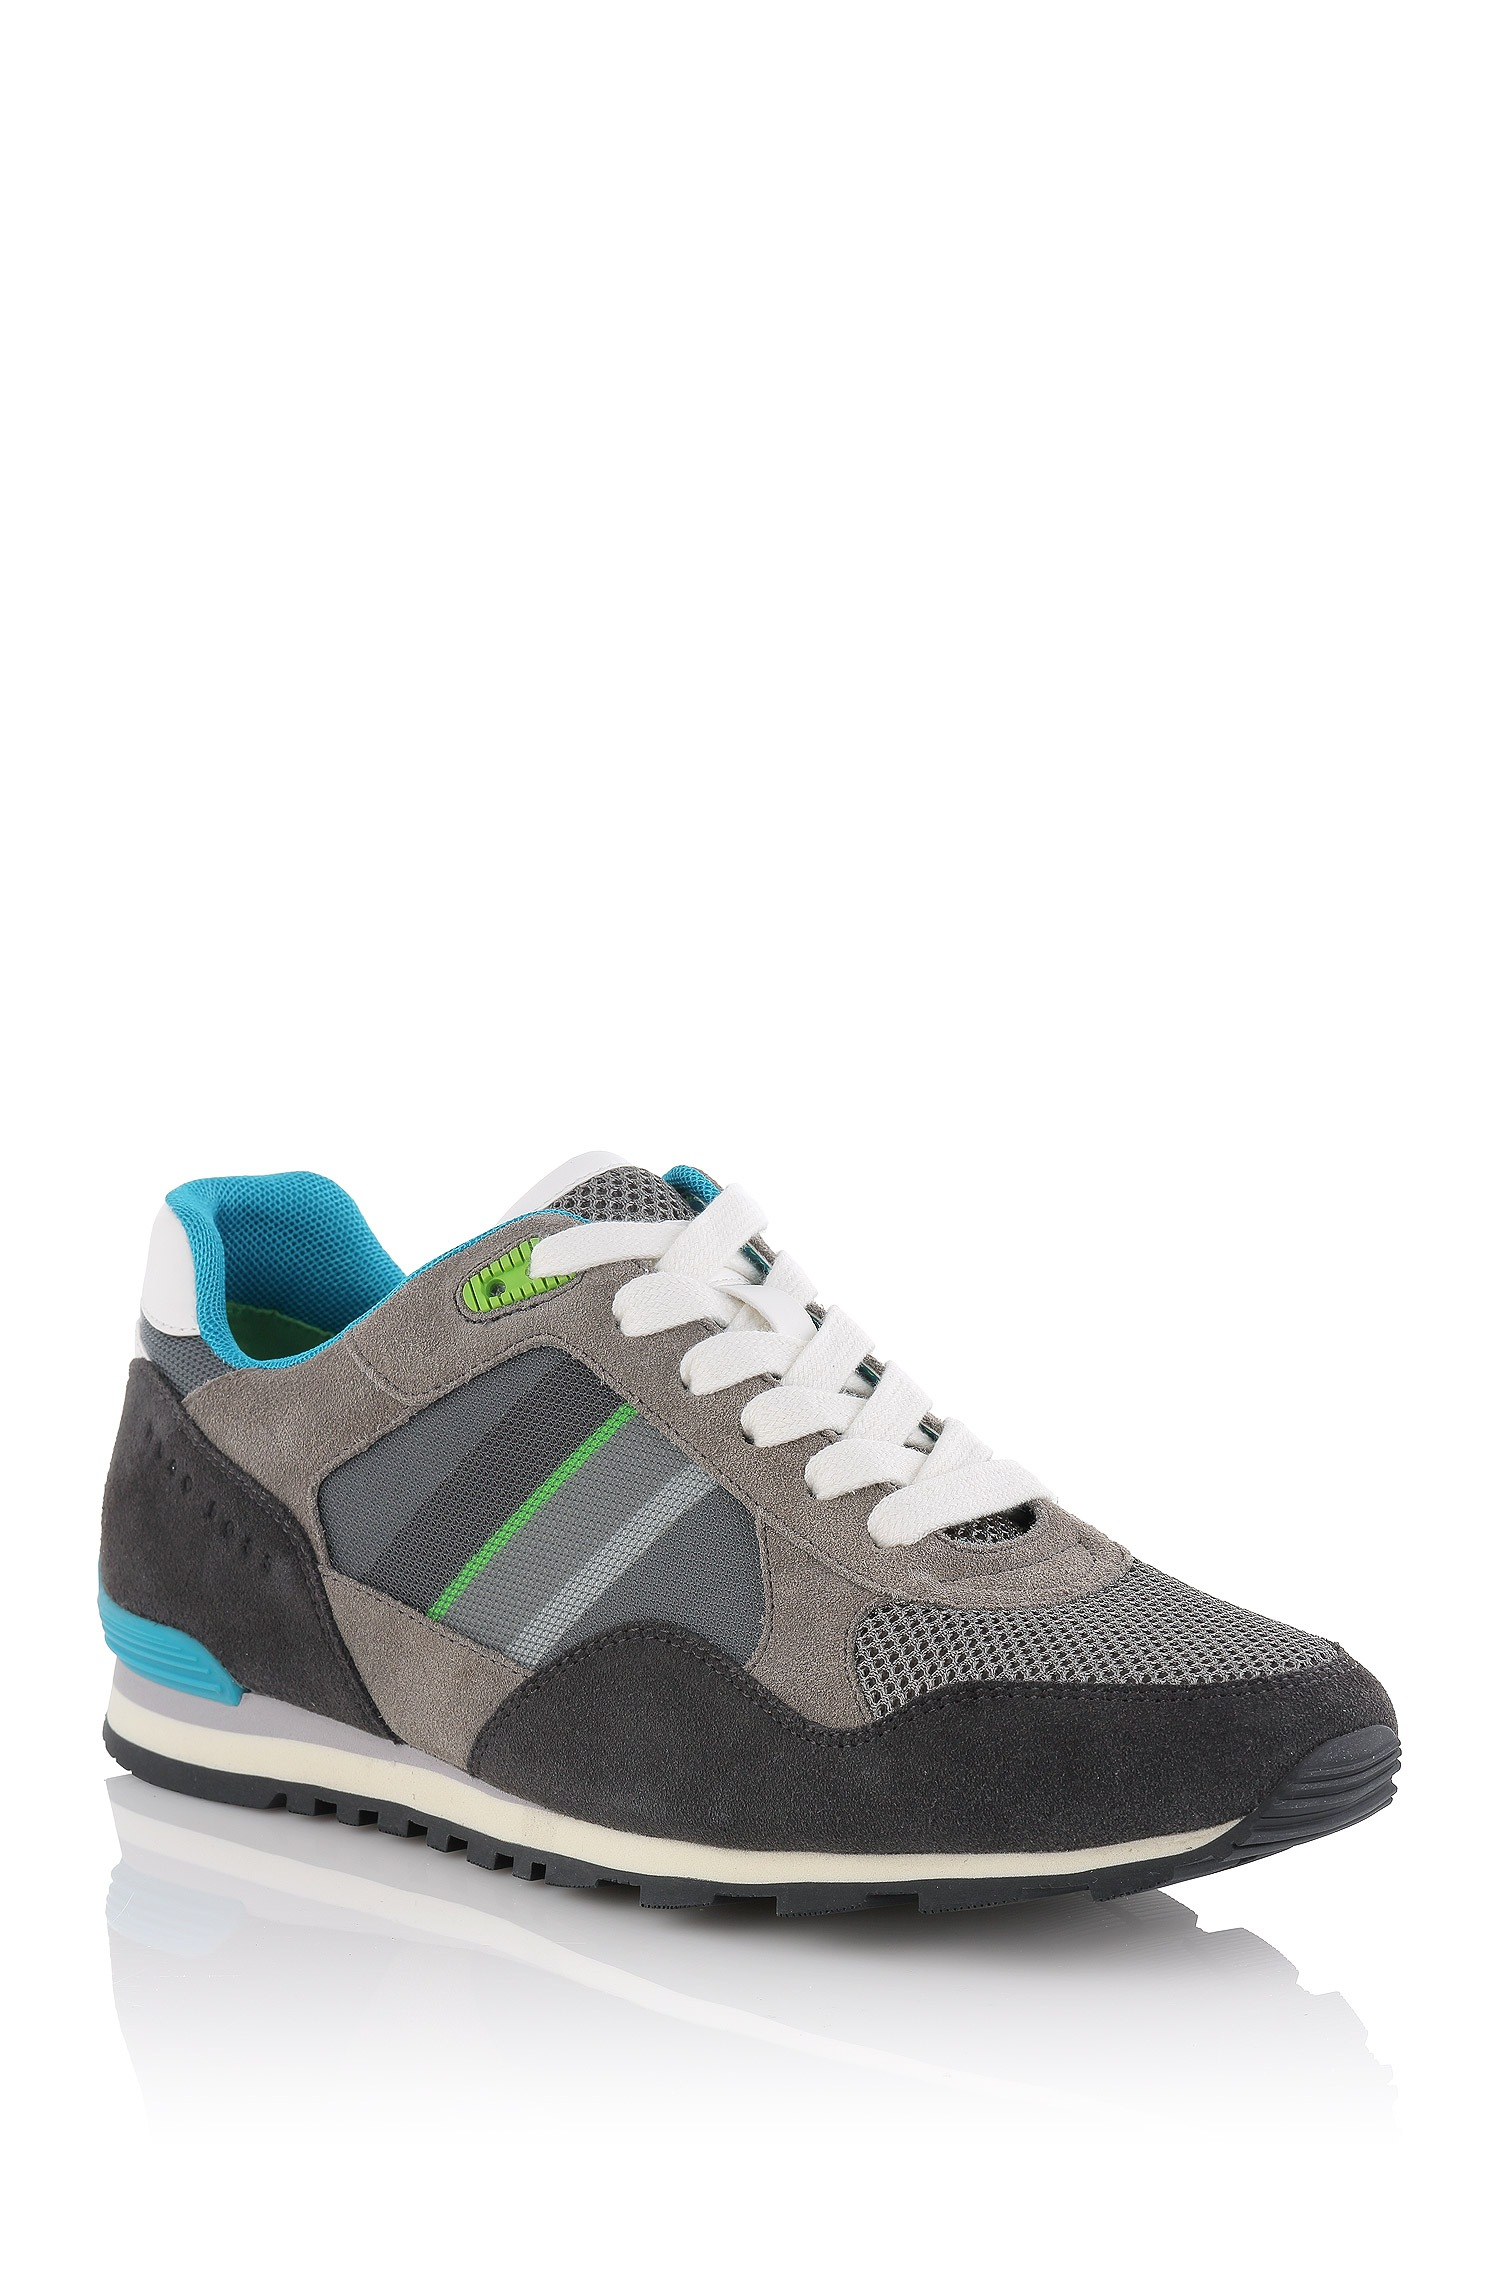 boss green 39 gym twist 39 neoprene and leather sneakers in gray for men grey lyst. Black Bedroom Furniture Sets. Home Design Ideas